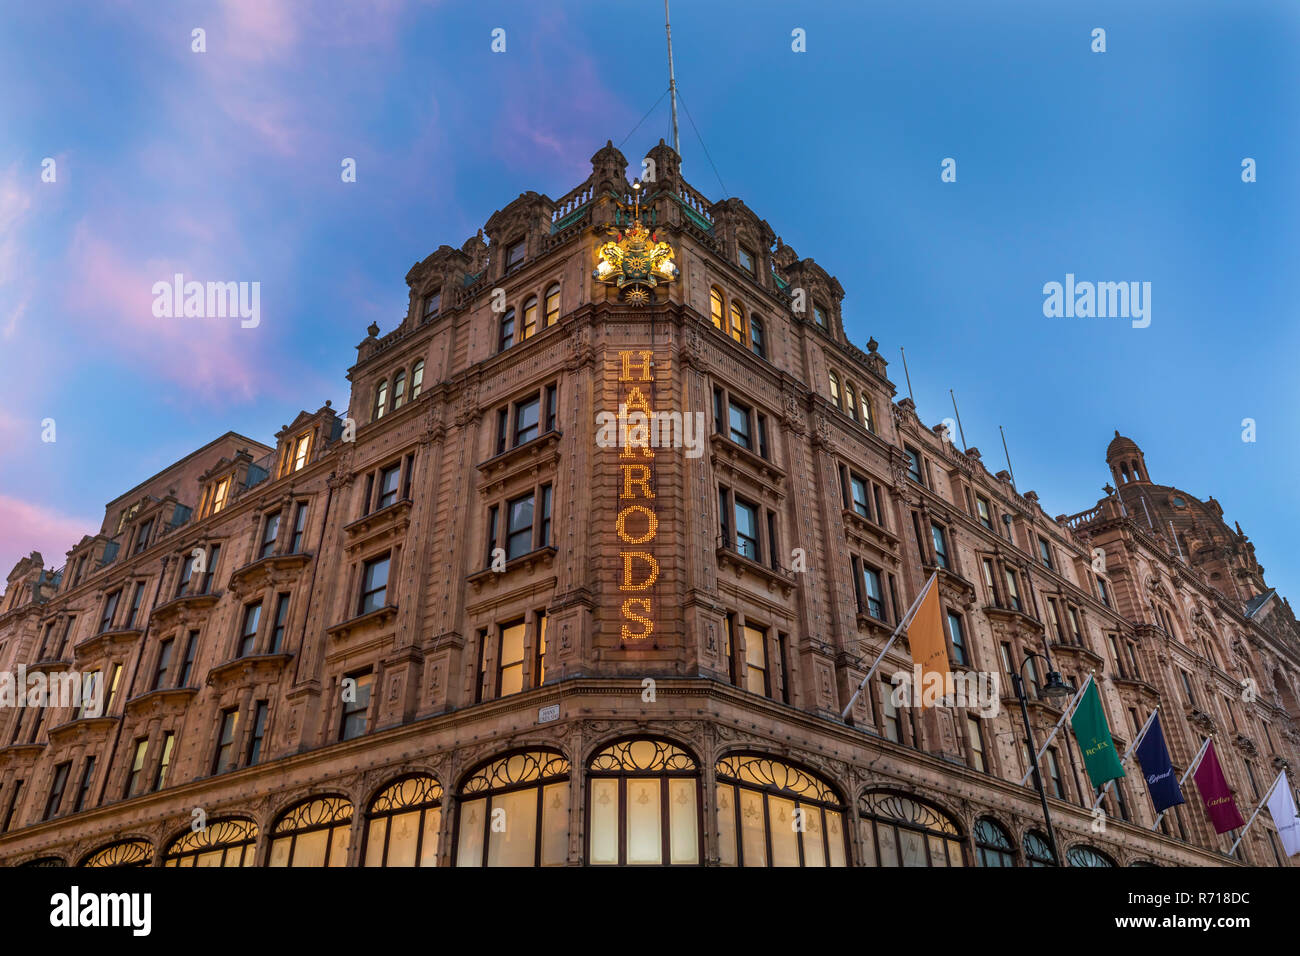 Harrods Department Store, blue hour, London, Great Britain - Stock Image